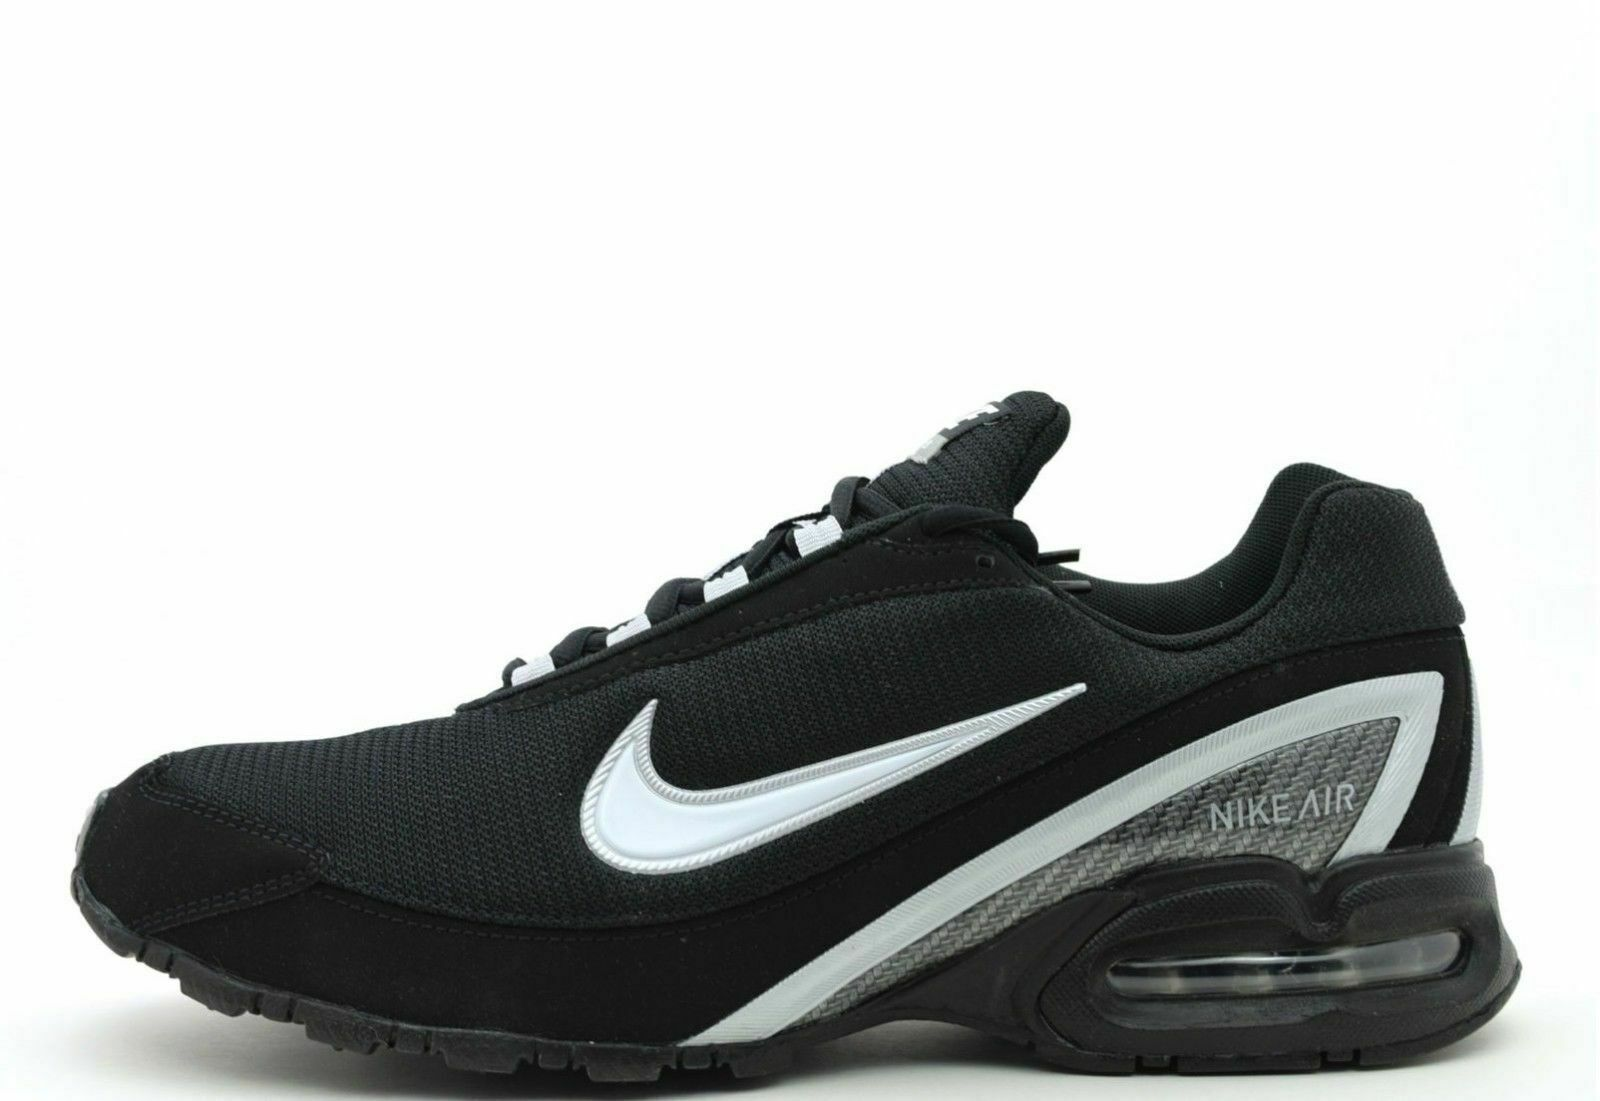 Nike Air Max Torch 3 Black White Grey 319116 011 Running Shoes Men's Multi Size